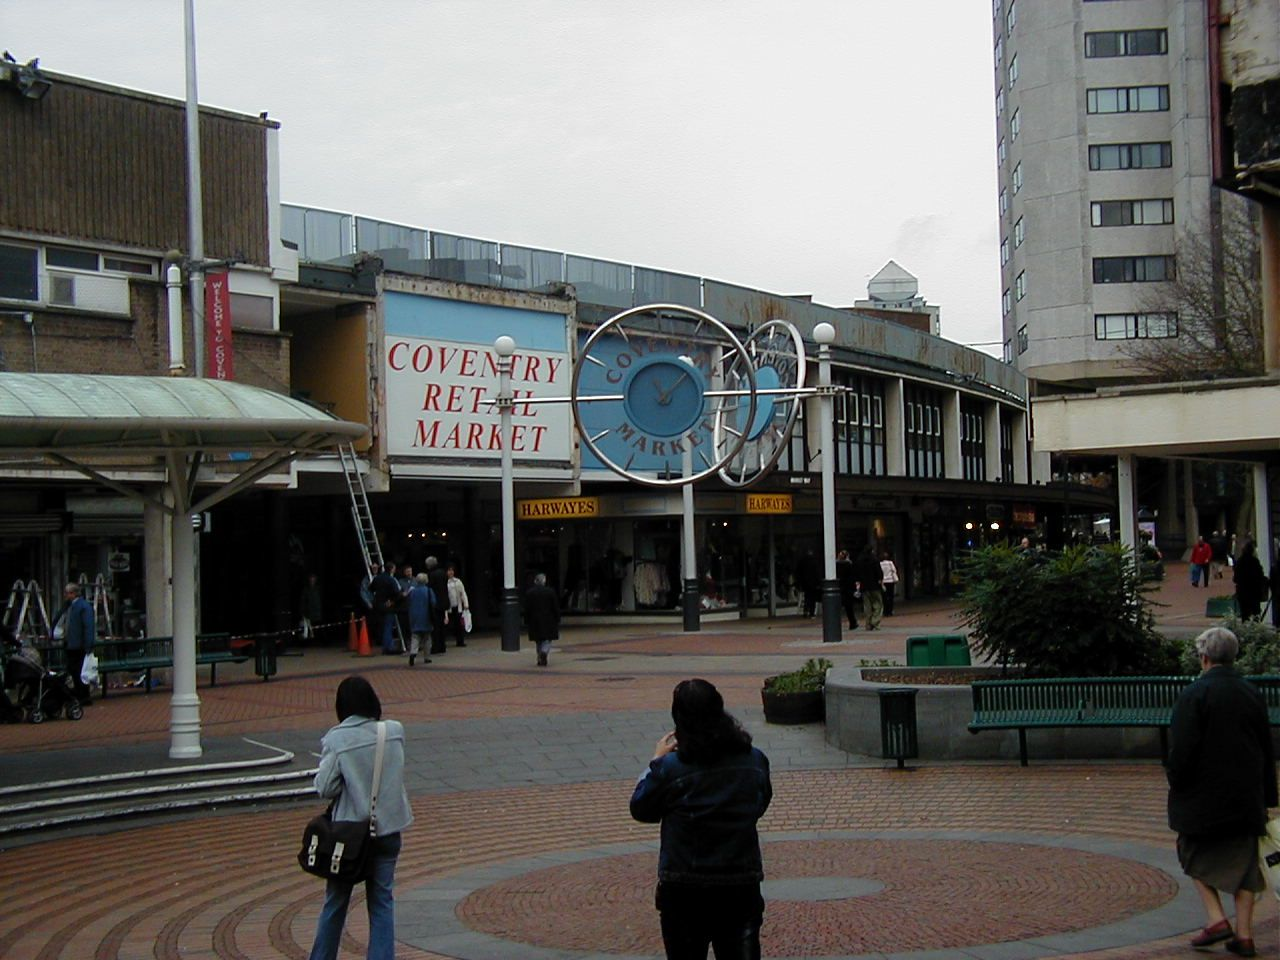 Coventry retail market shelton square my home coventry for Tattoo shops belgrade mt